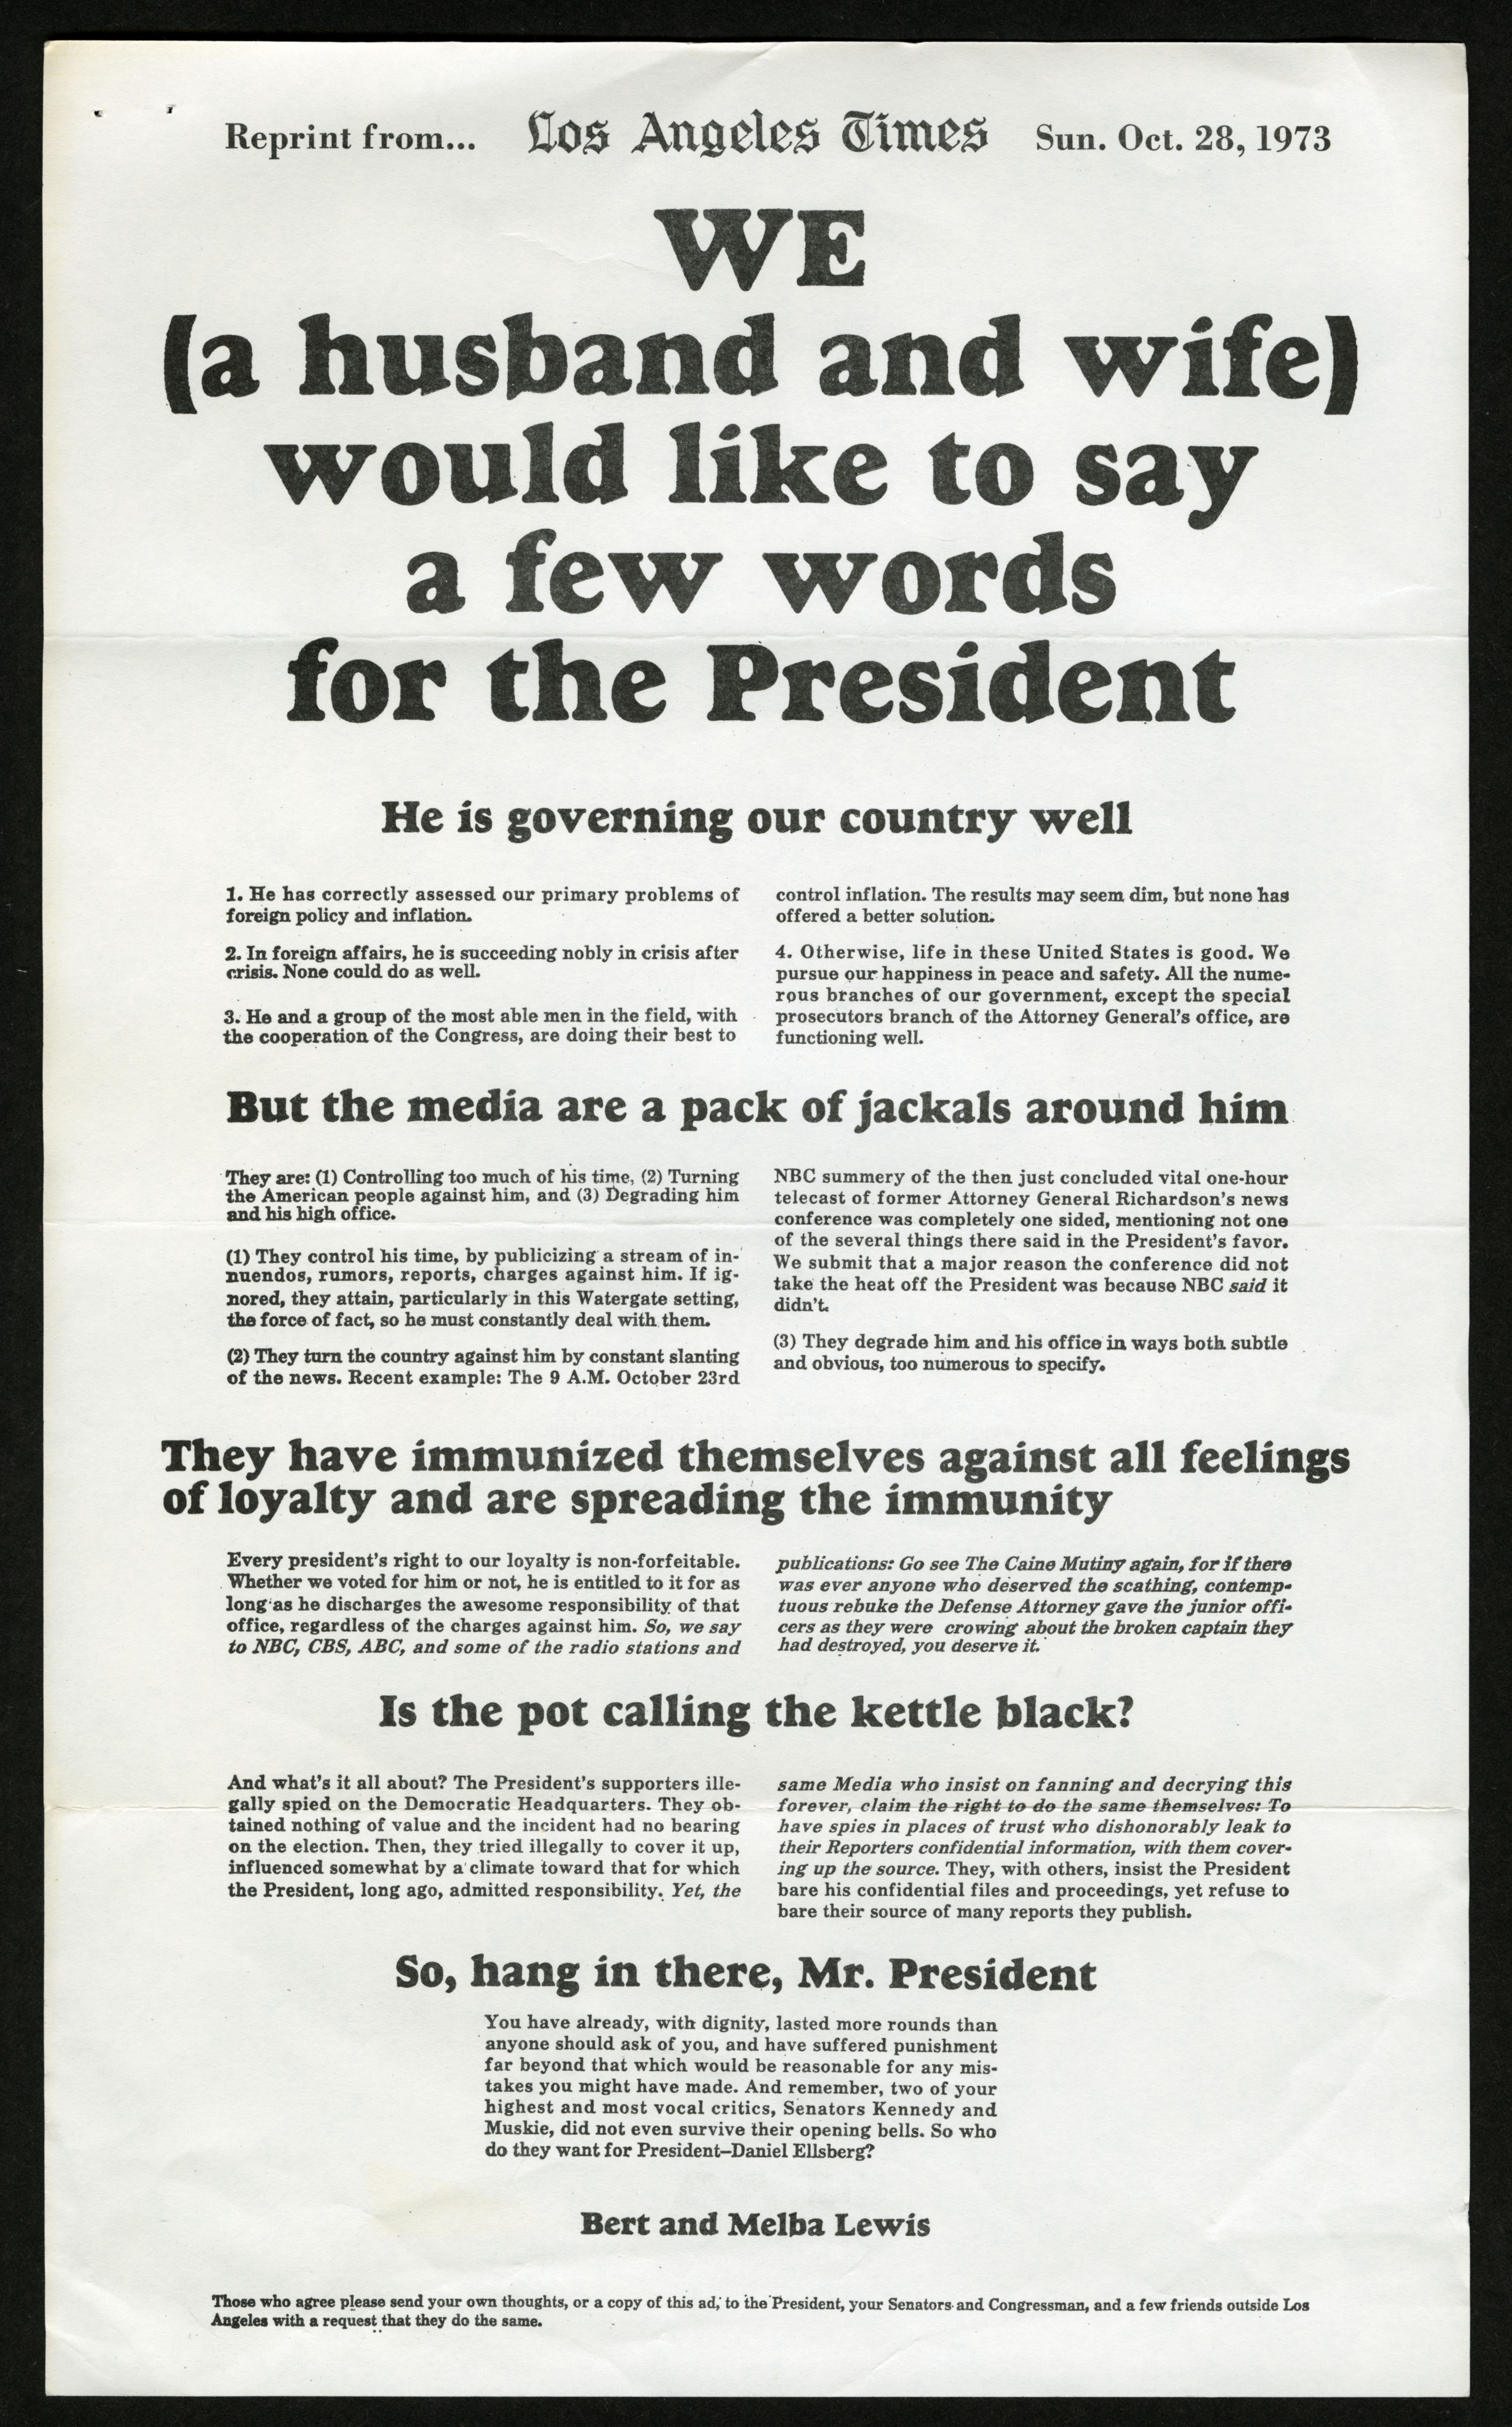 Ad from Bert and Melba Lewis against Nixon impeachment published in the Los Angeles Times (Gilder Lehrman Institute, GLC09613.02.2302)